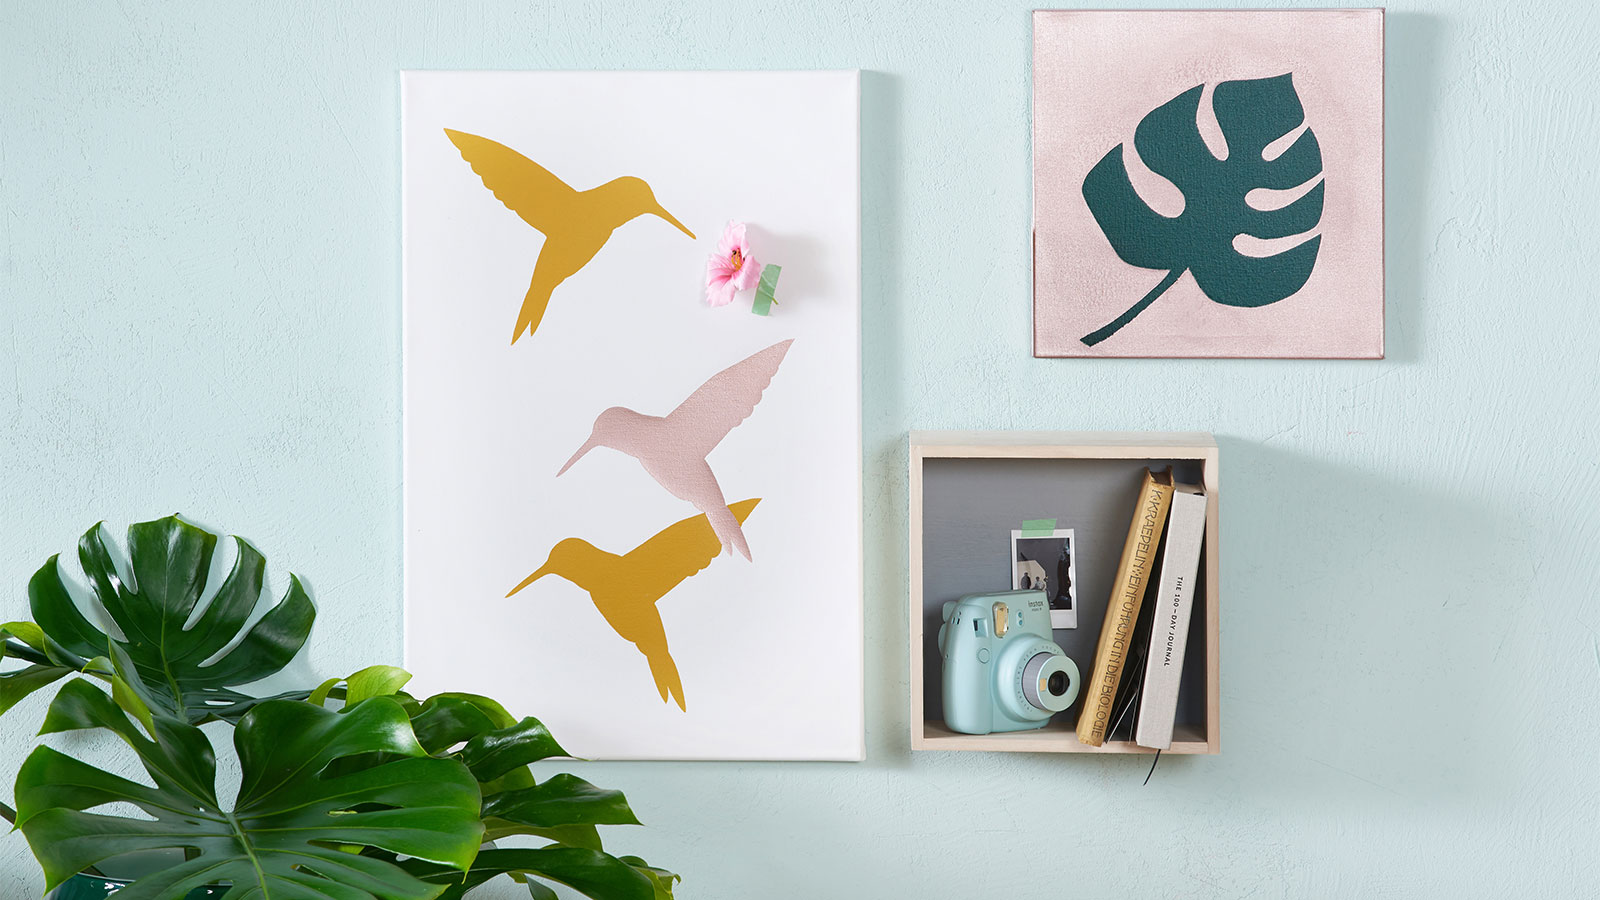 Diy Canvas Wall Art With Hummingbird Motif Ideas Edding